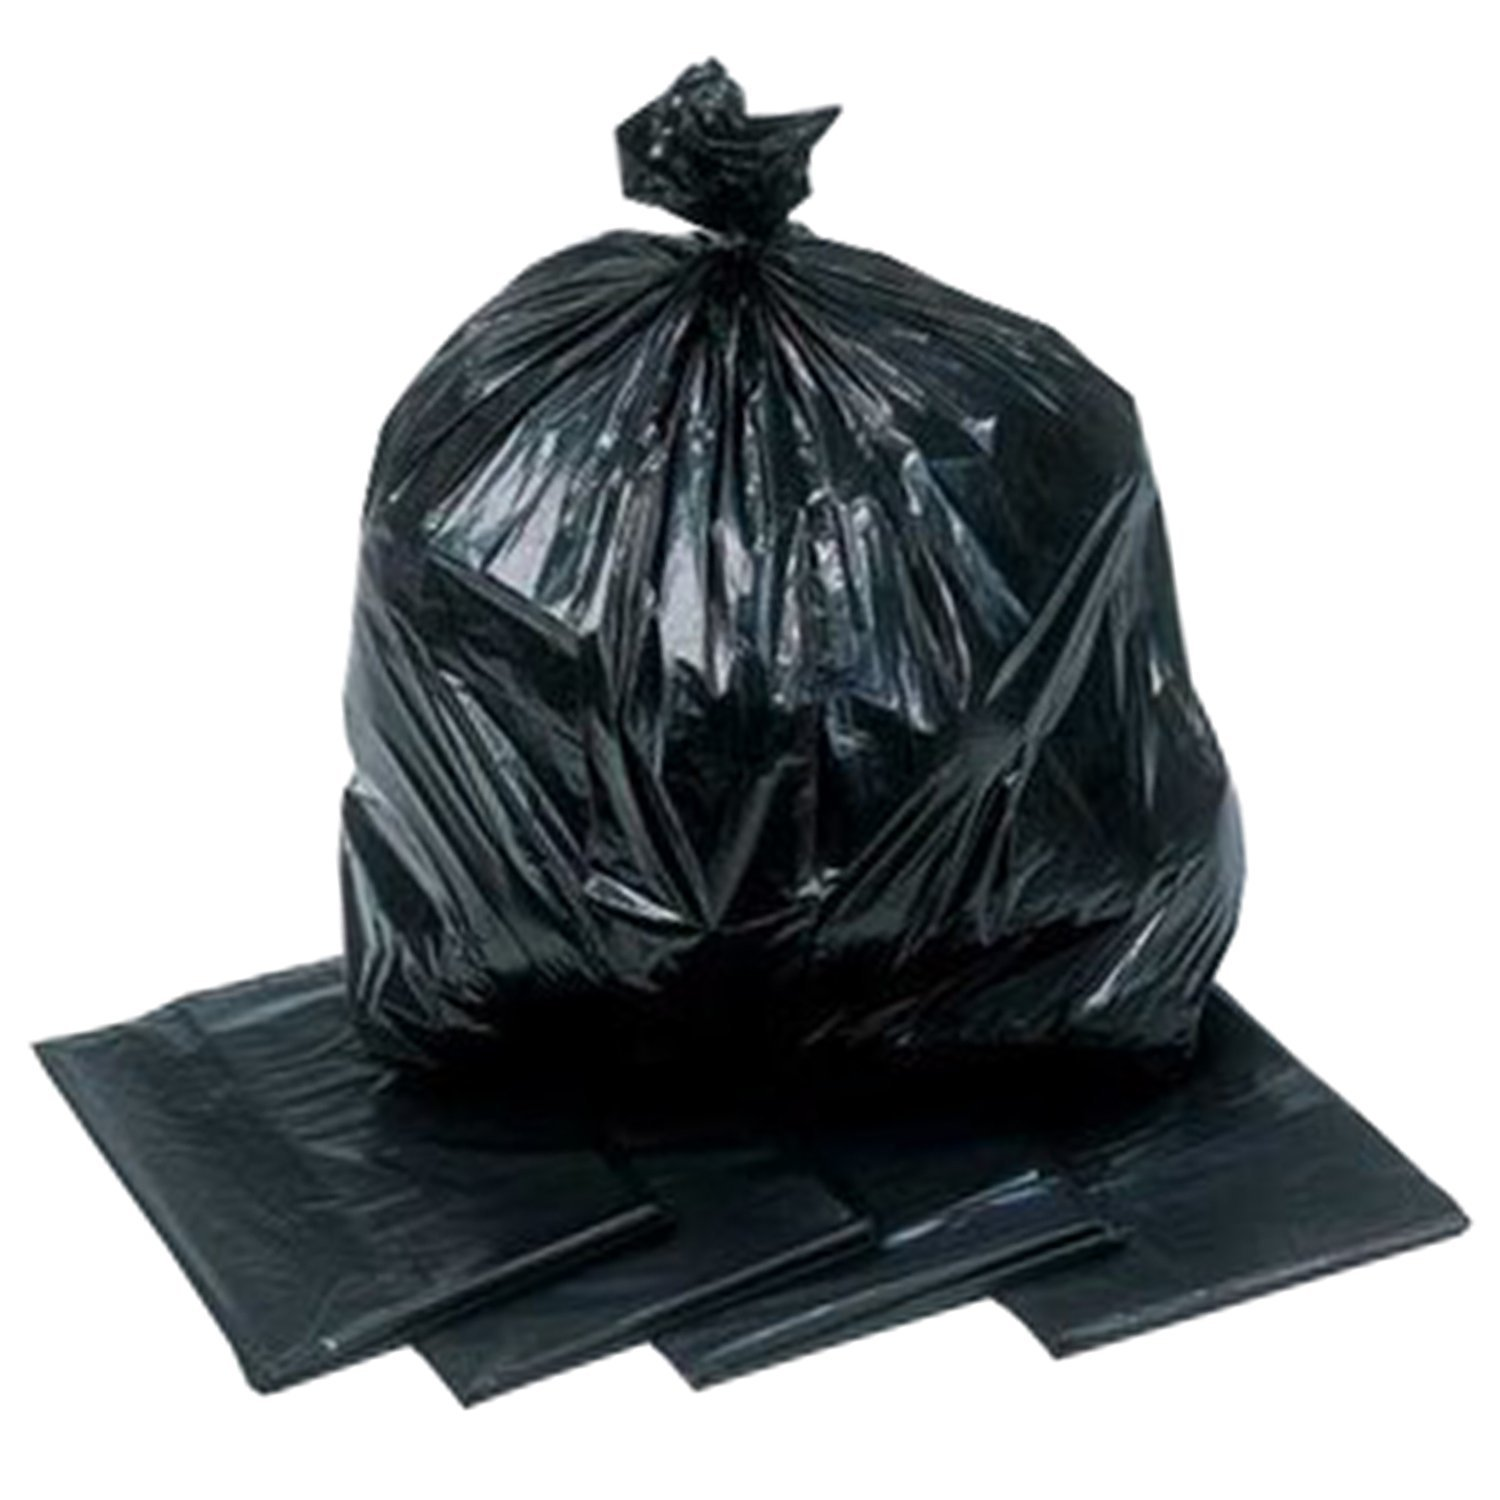 Refuse Sacks Black Heavy Duty  – 180g